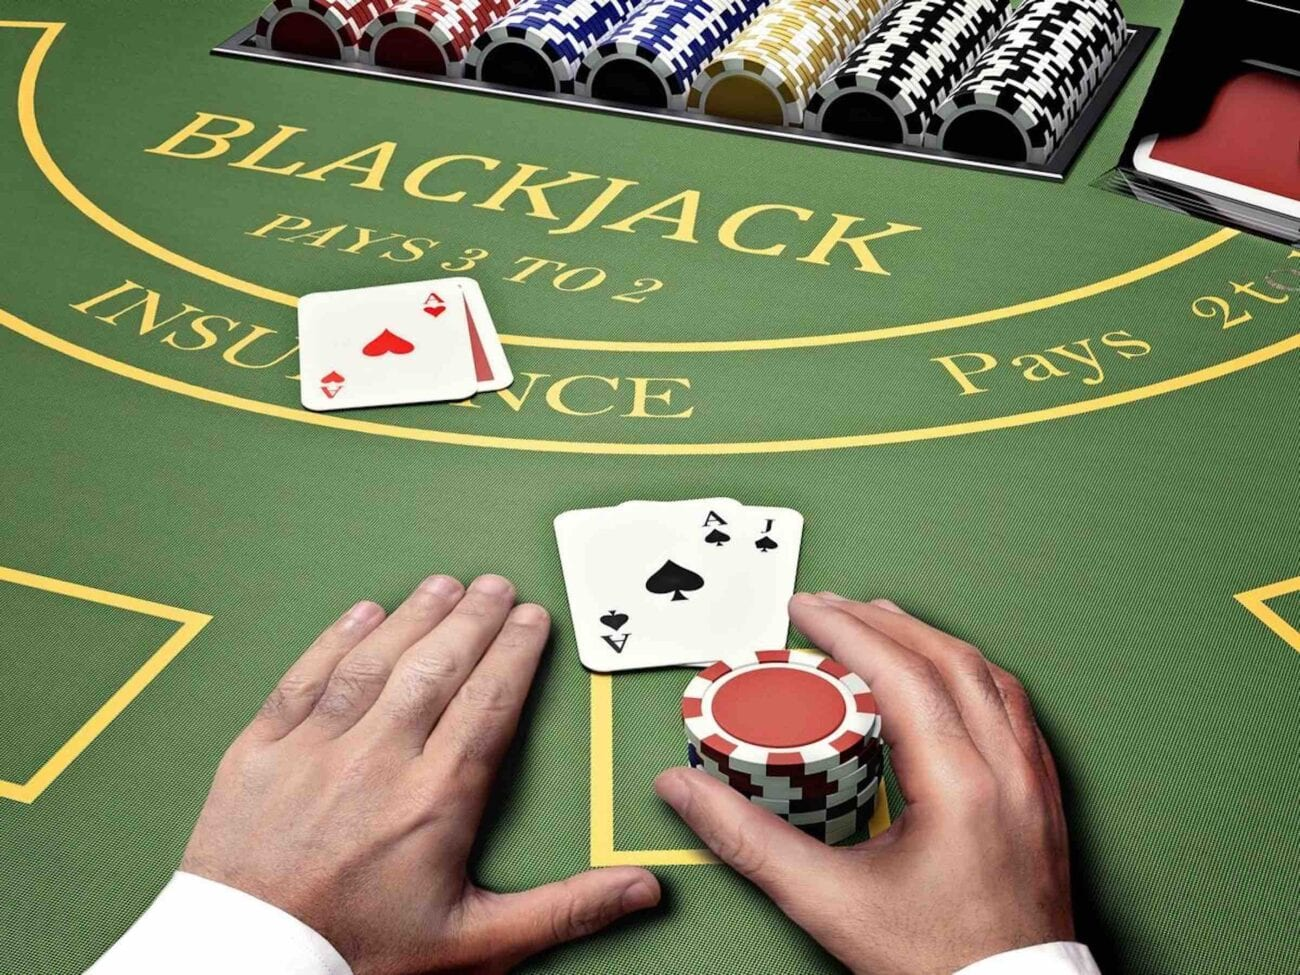 There have been some exceptional movies made about blackjack. Learn about the best casino and blackjack movies, such as '21' – and more!